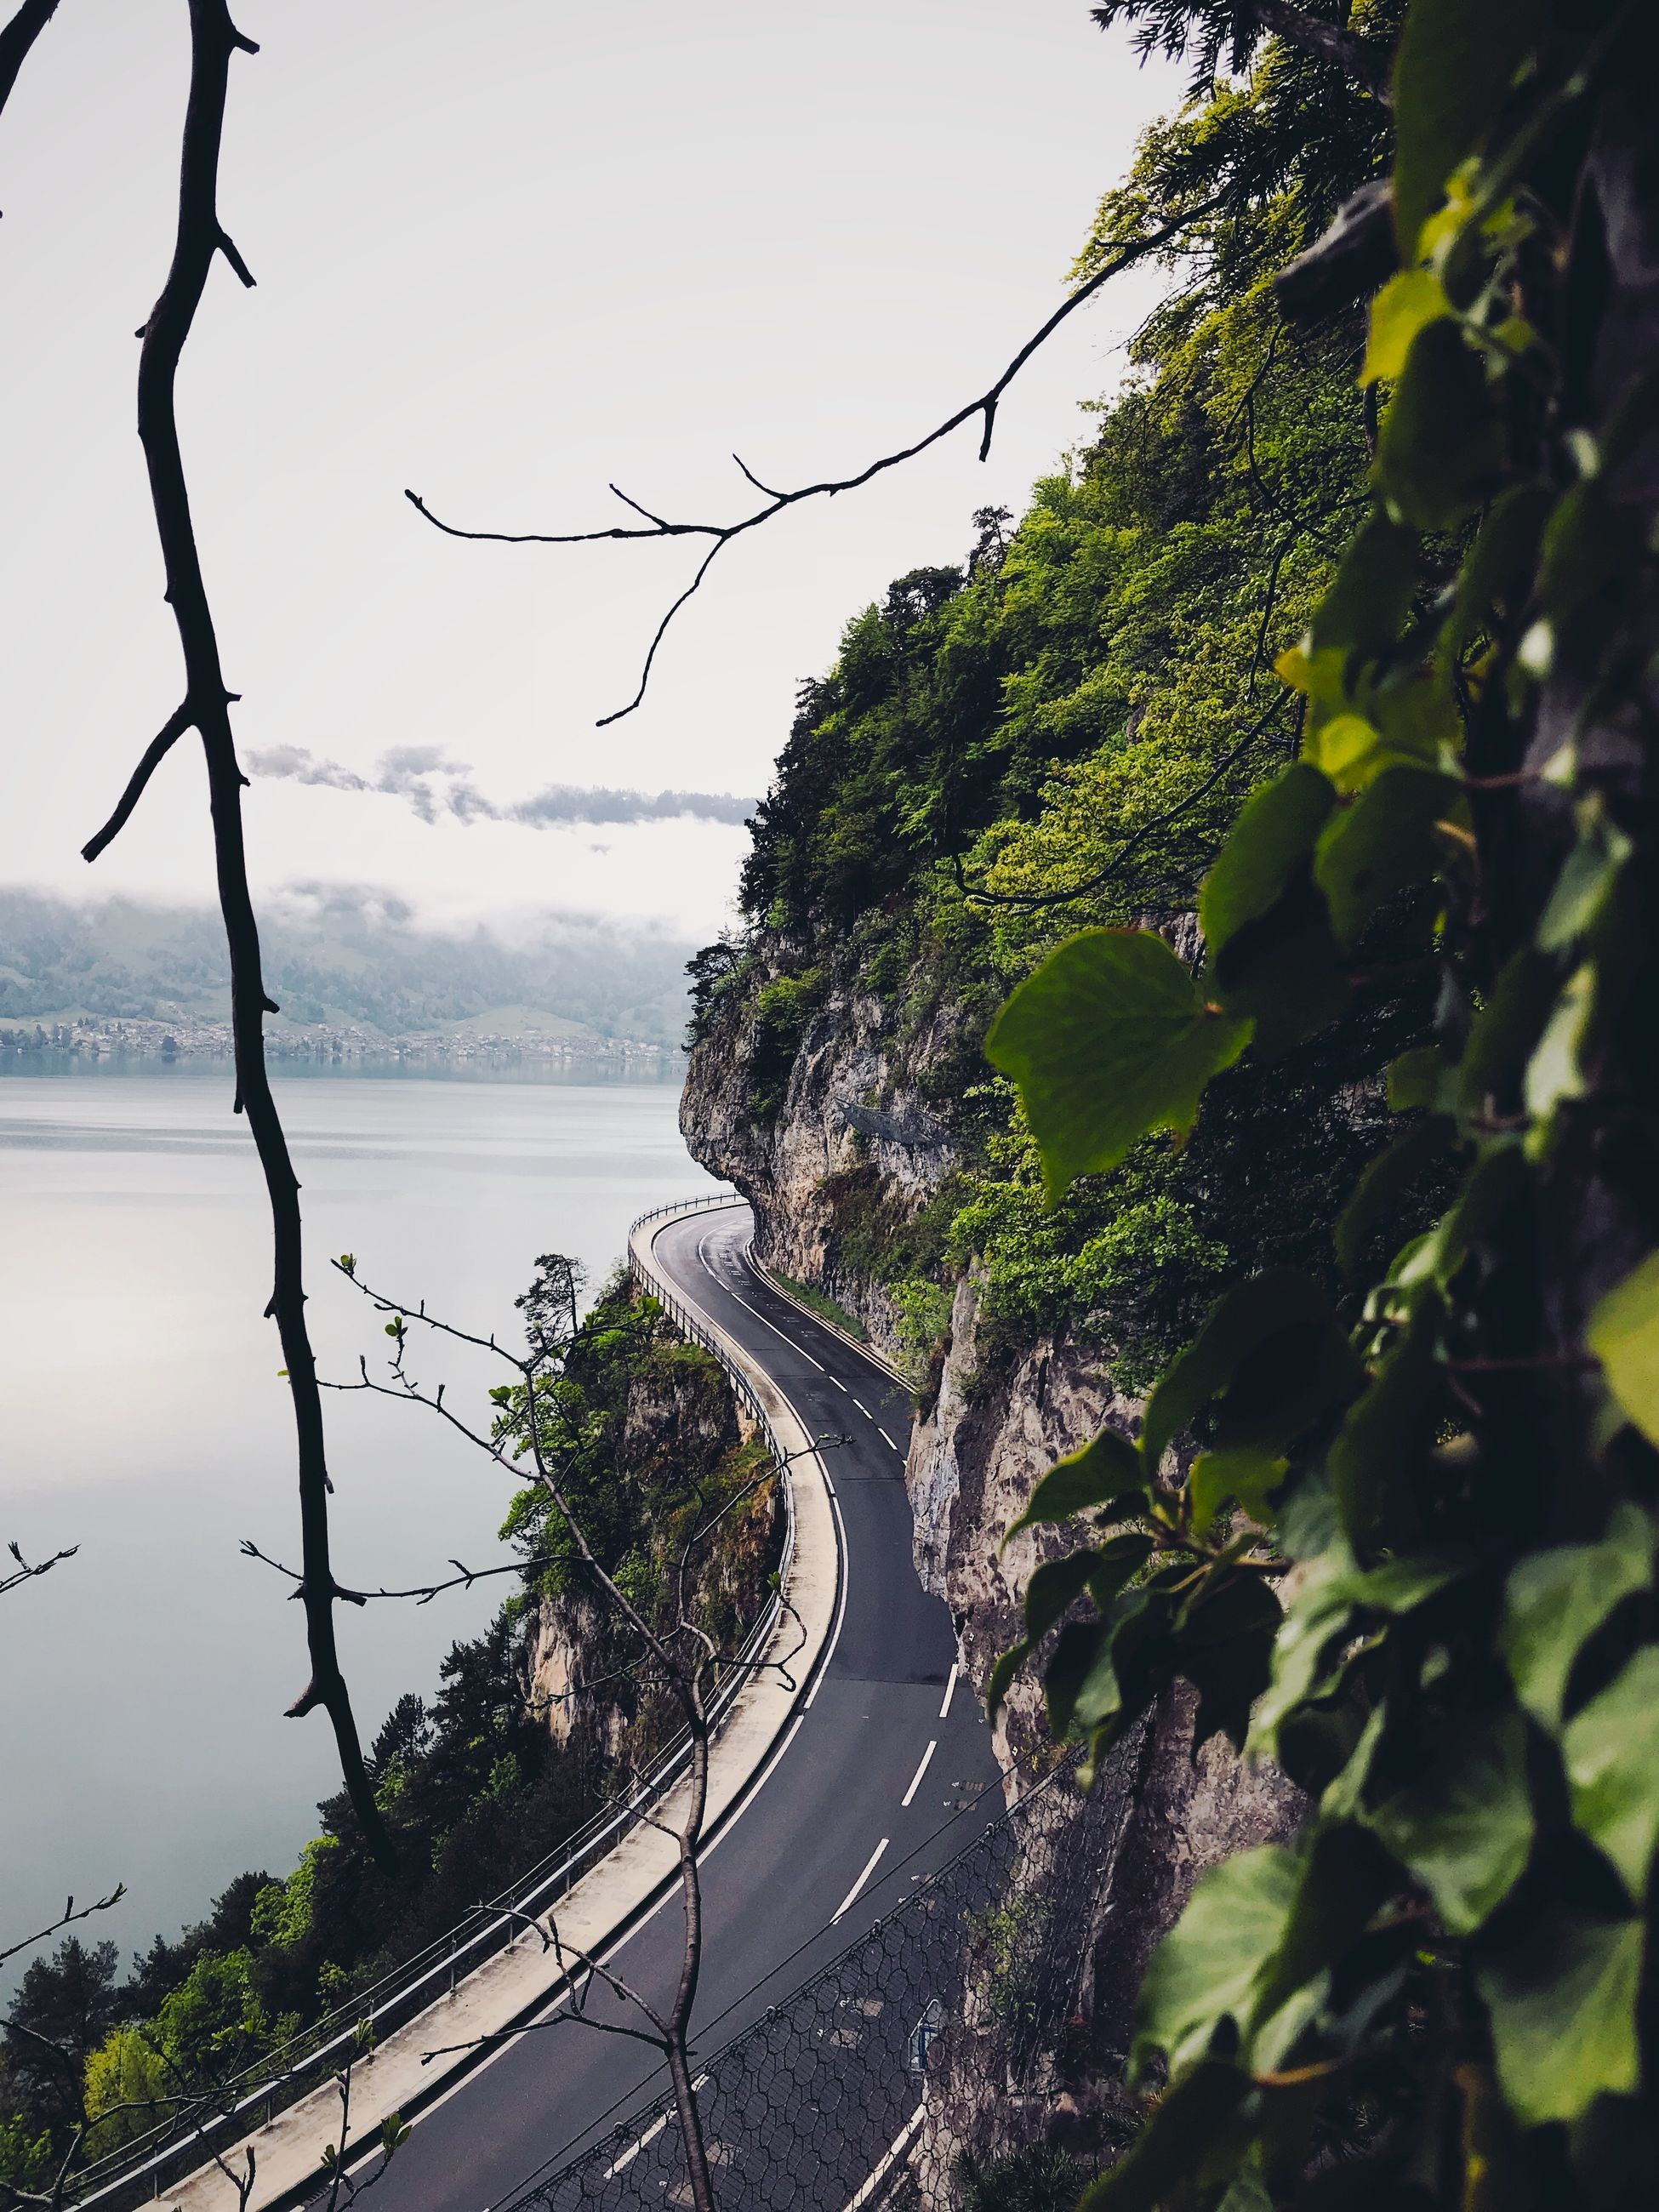 tree, road, transportation, nature, plant, water, day, no people, sky, beauty in nature, connection, green color, growth, outdoors, scenics - nature, high angle view, mountain, mountain road, curve